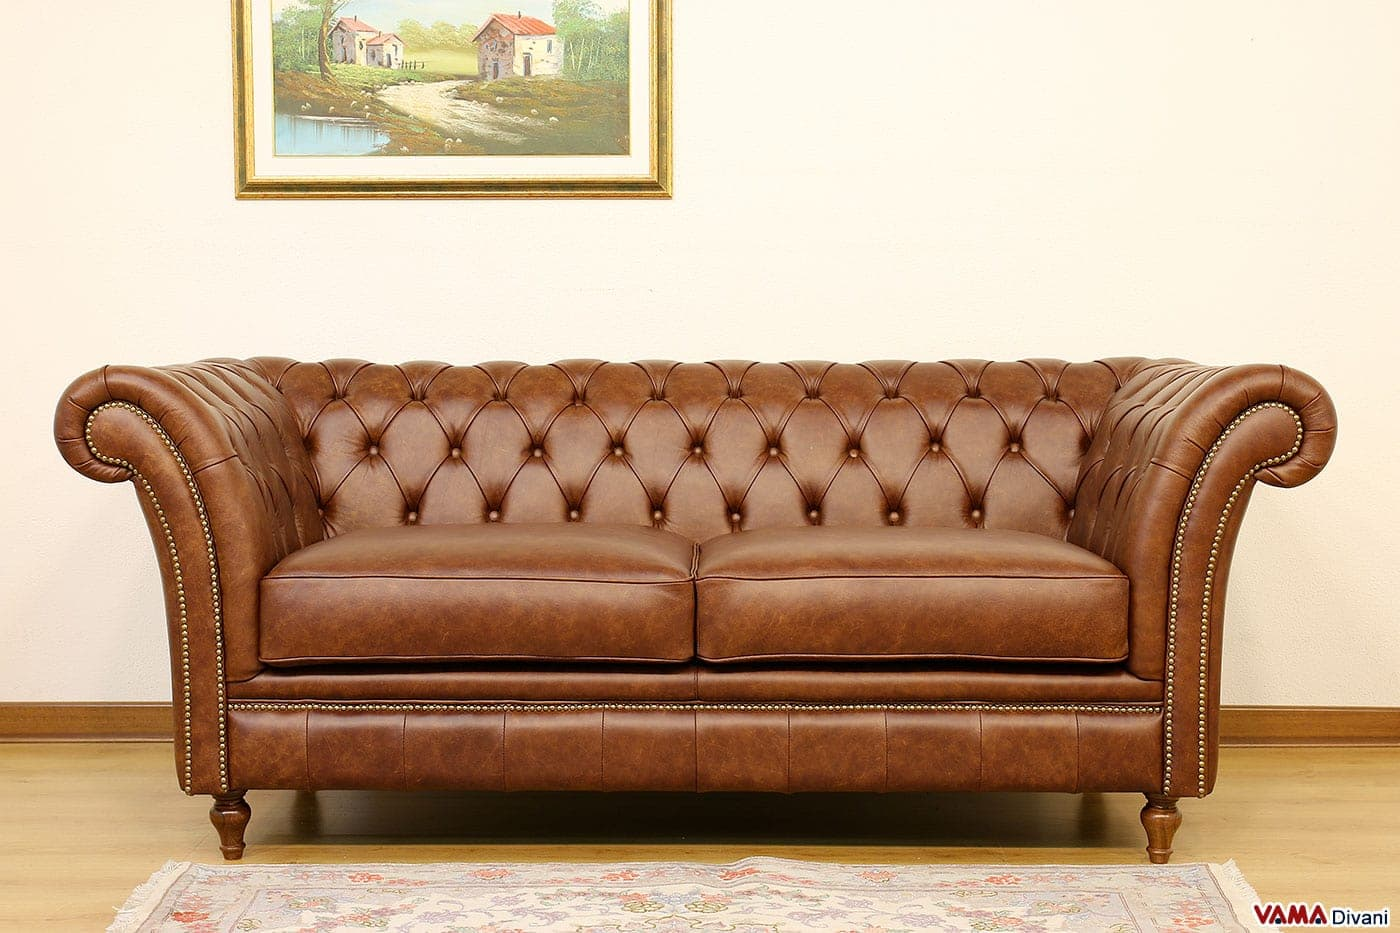 Divano chesterfield vintage originale in vera pelle - Chesterfield divano ...